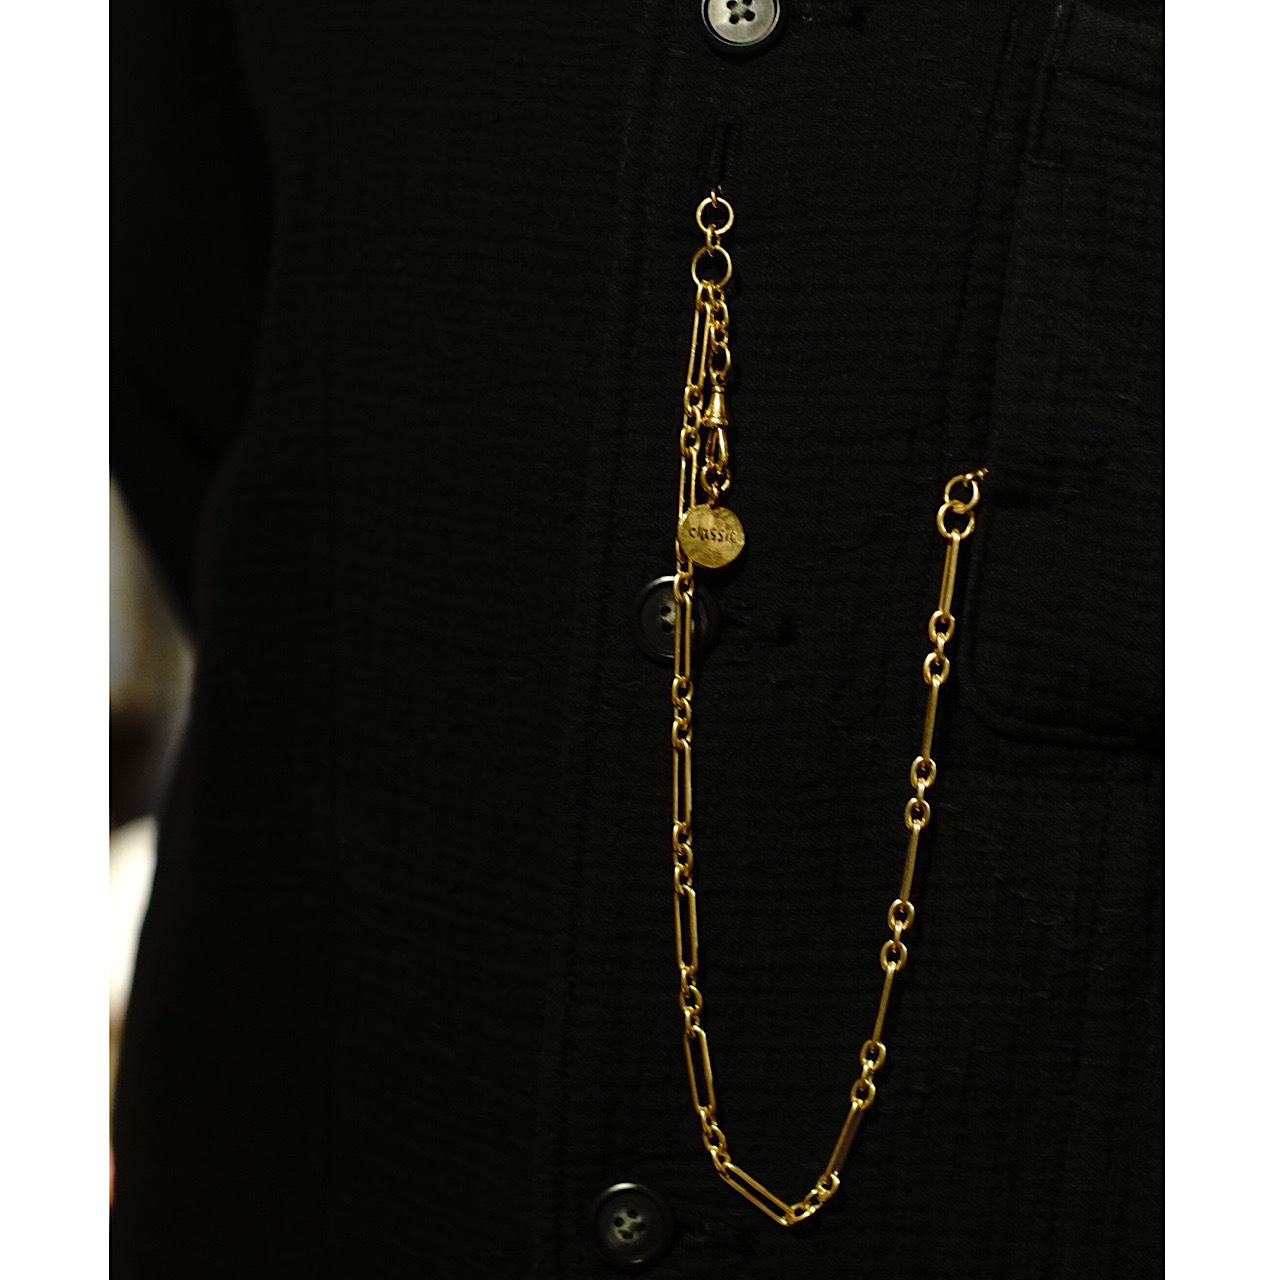 ROYALTY 3WAY WATCH CHAIN 2020 SINGLE TYPE  GOLD